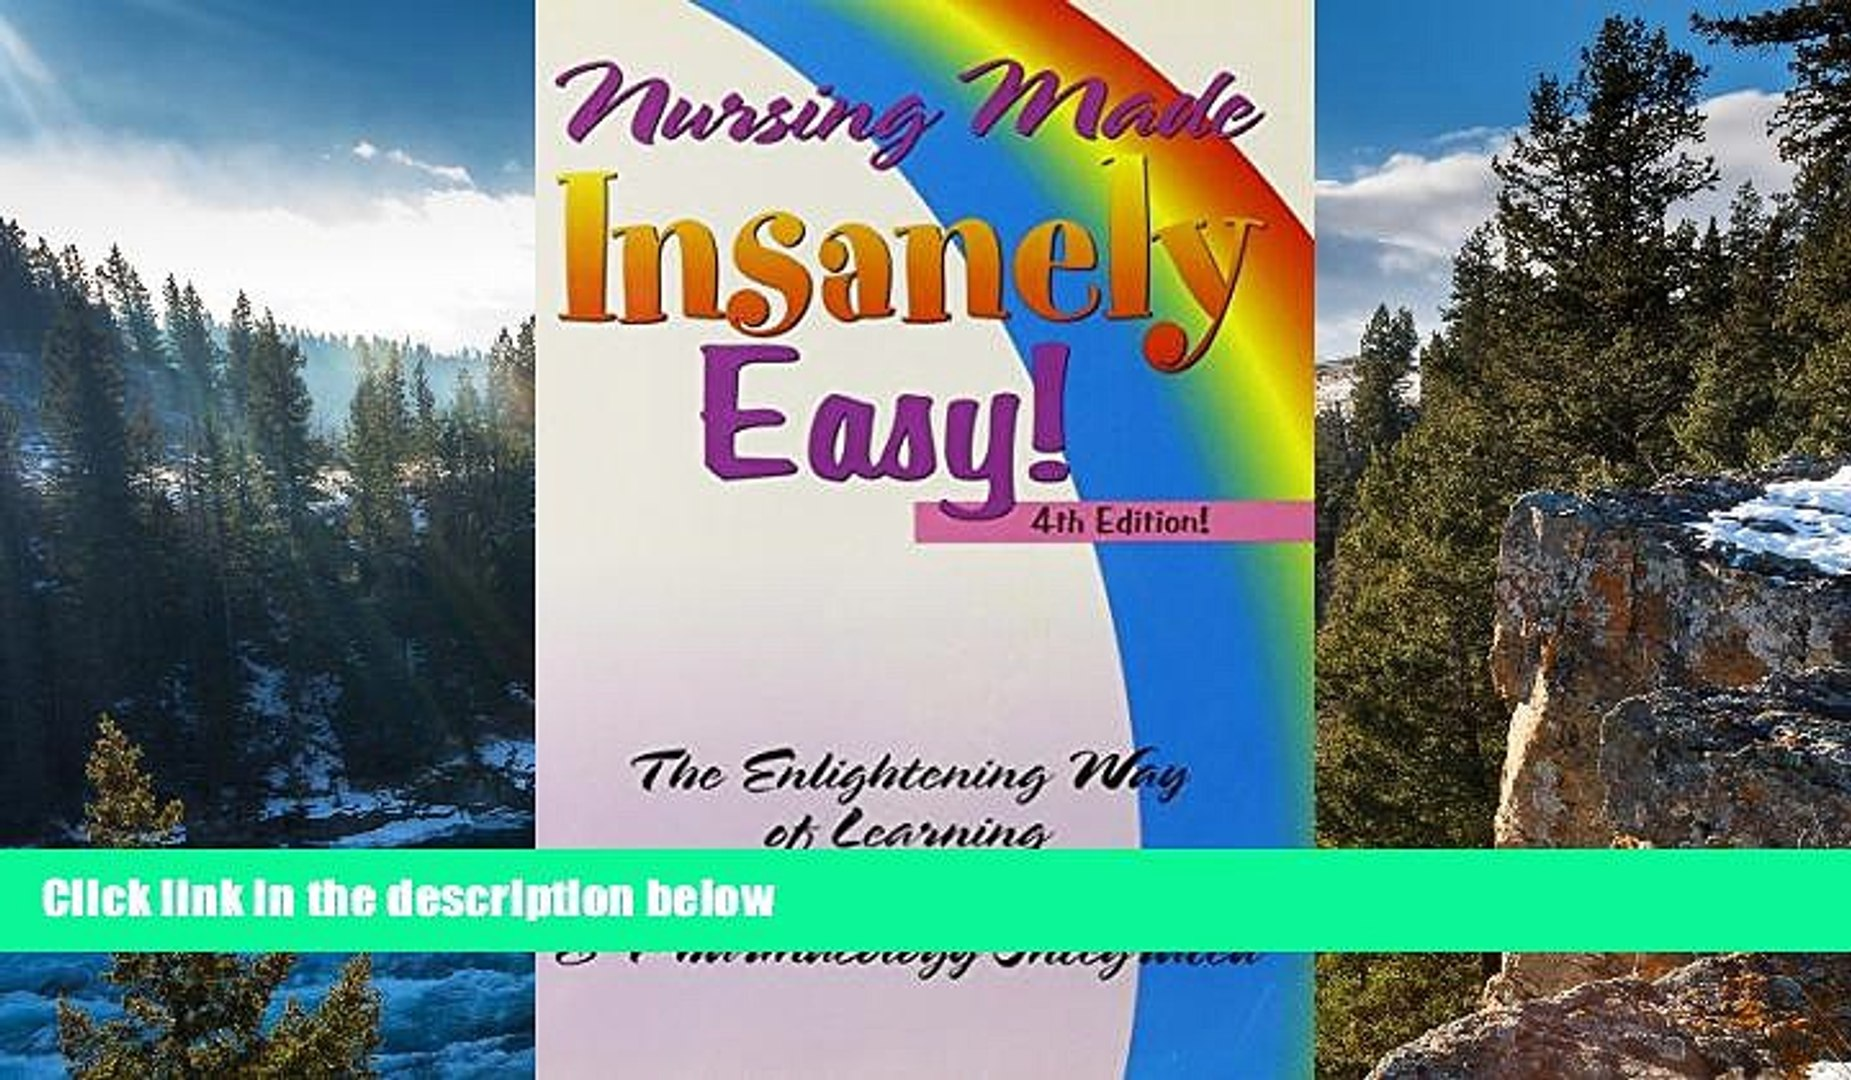 Online Sylvia Rayfield Nursing Made Insanely Easy Full Book Epub